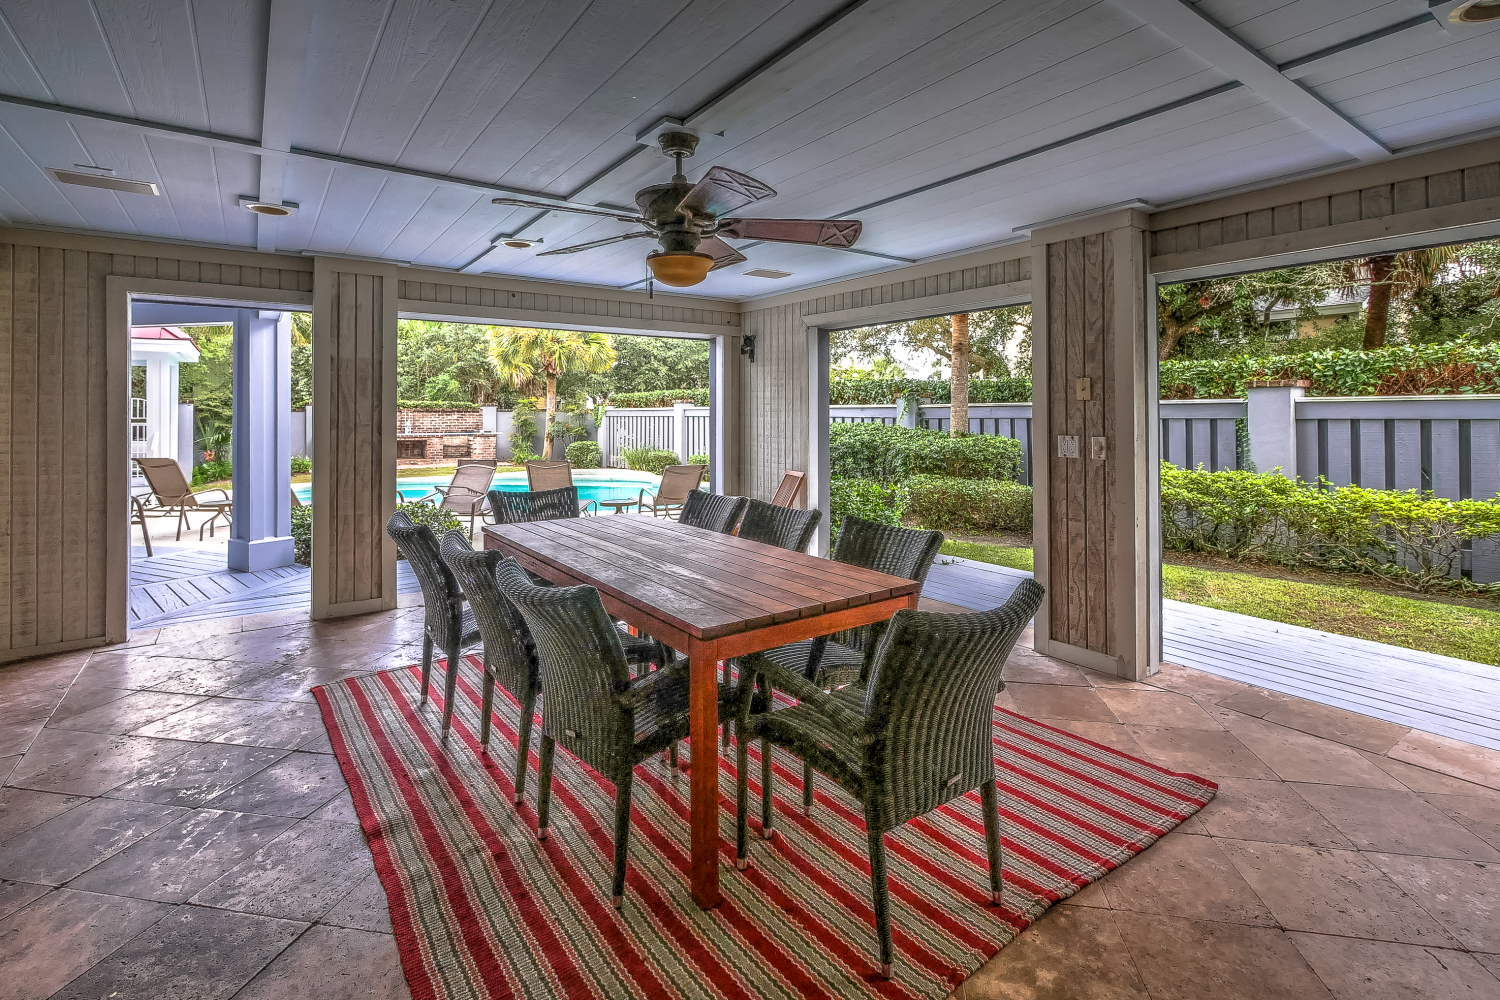 Grill area and table | Atlantic Breeze